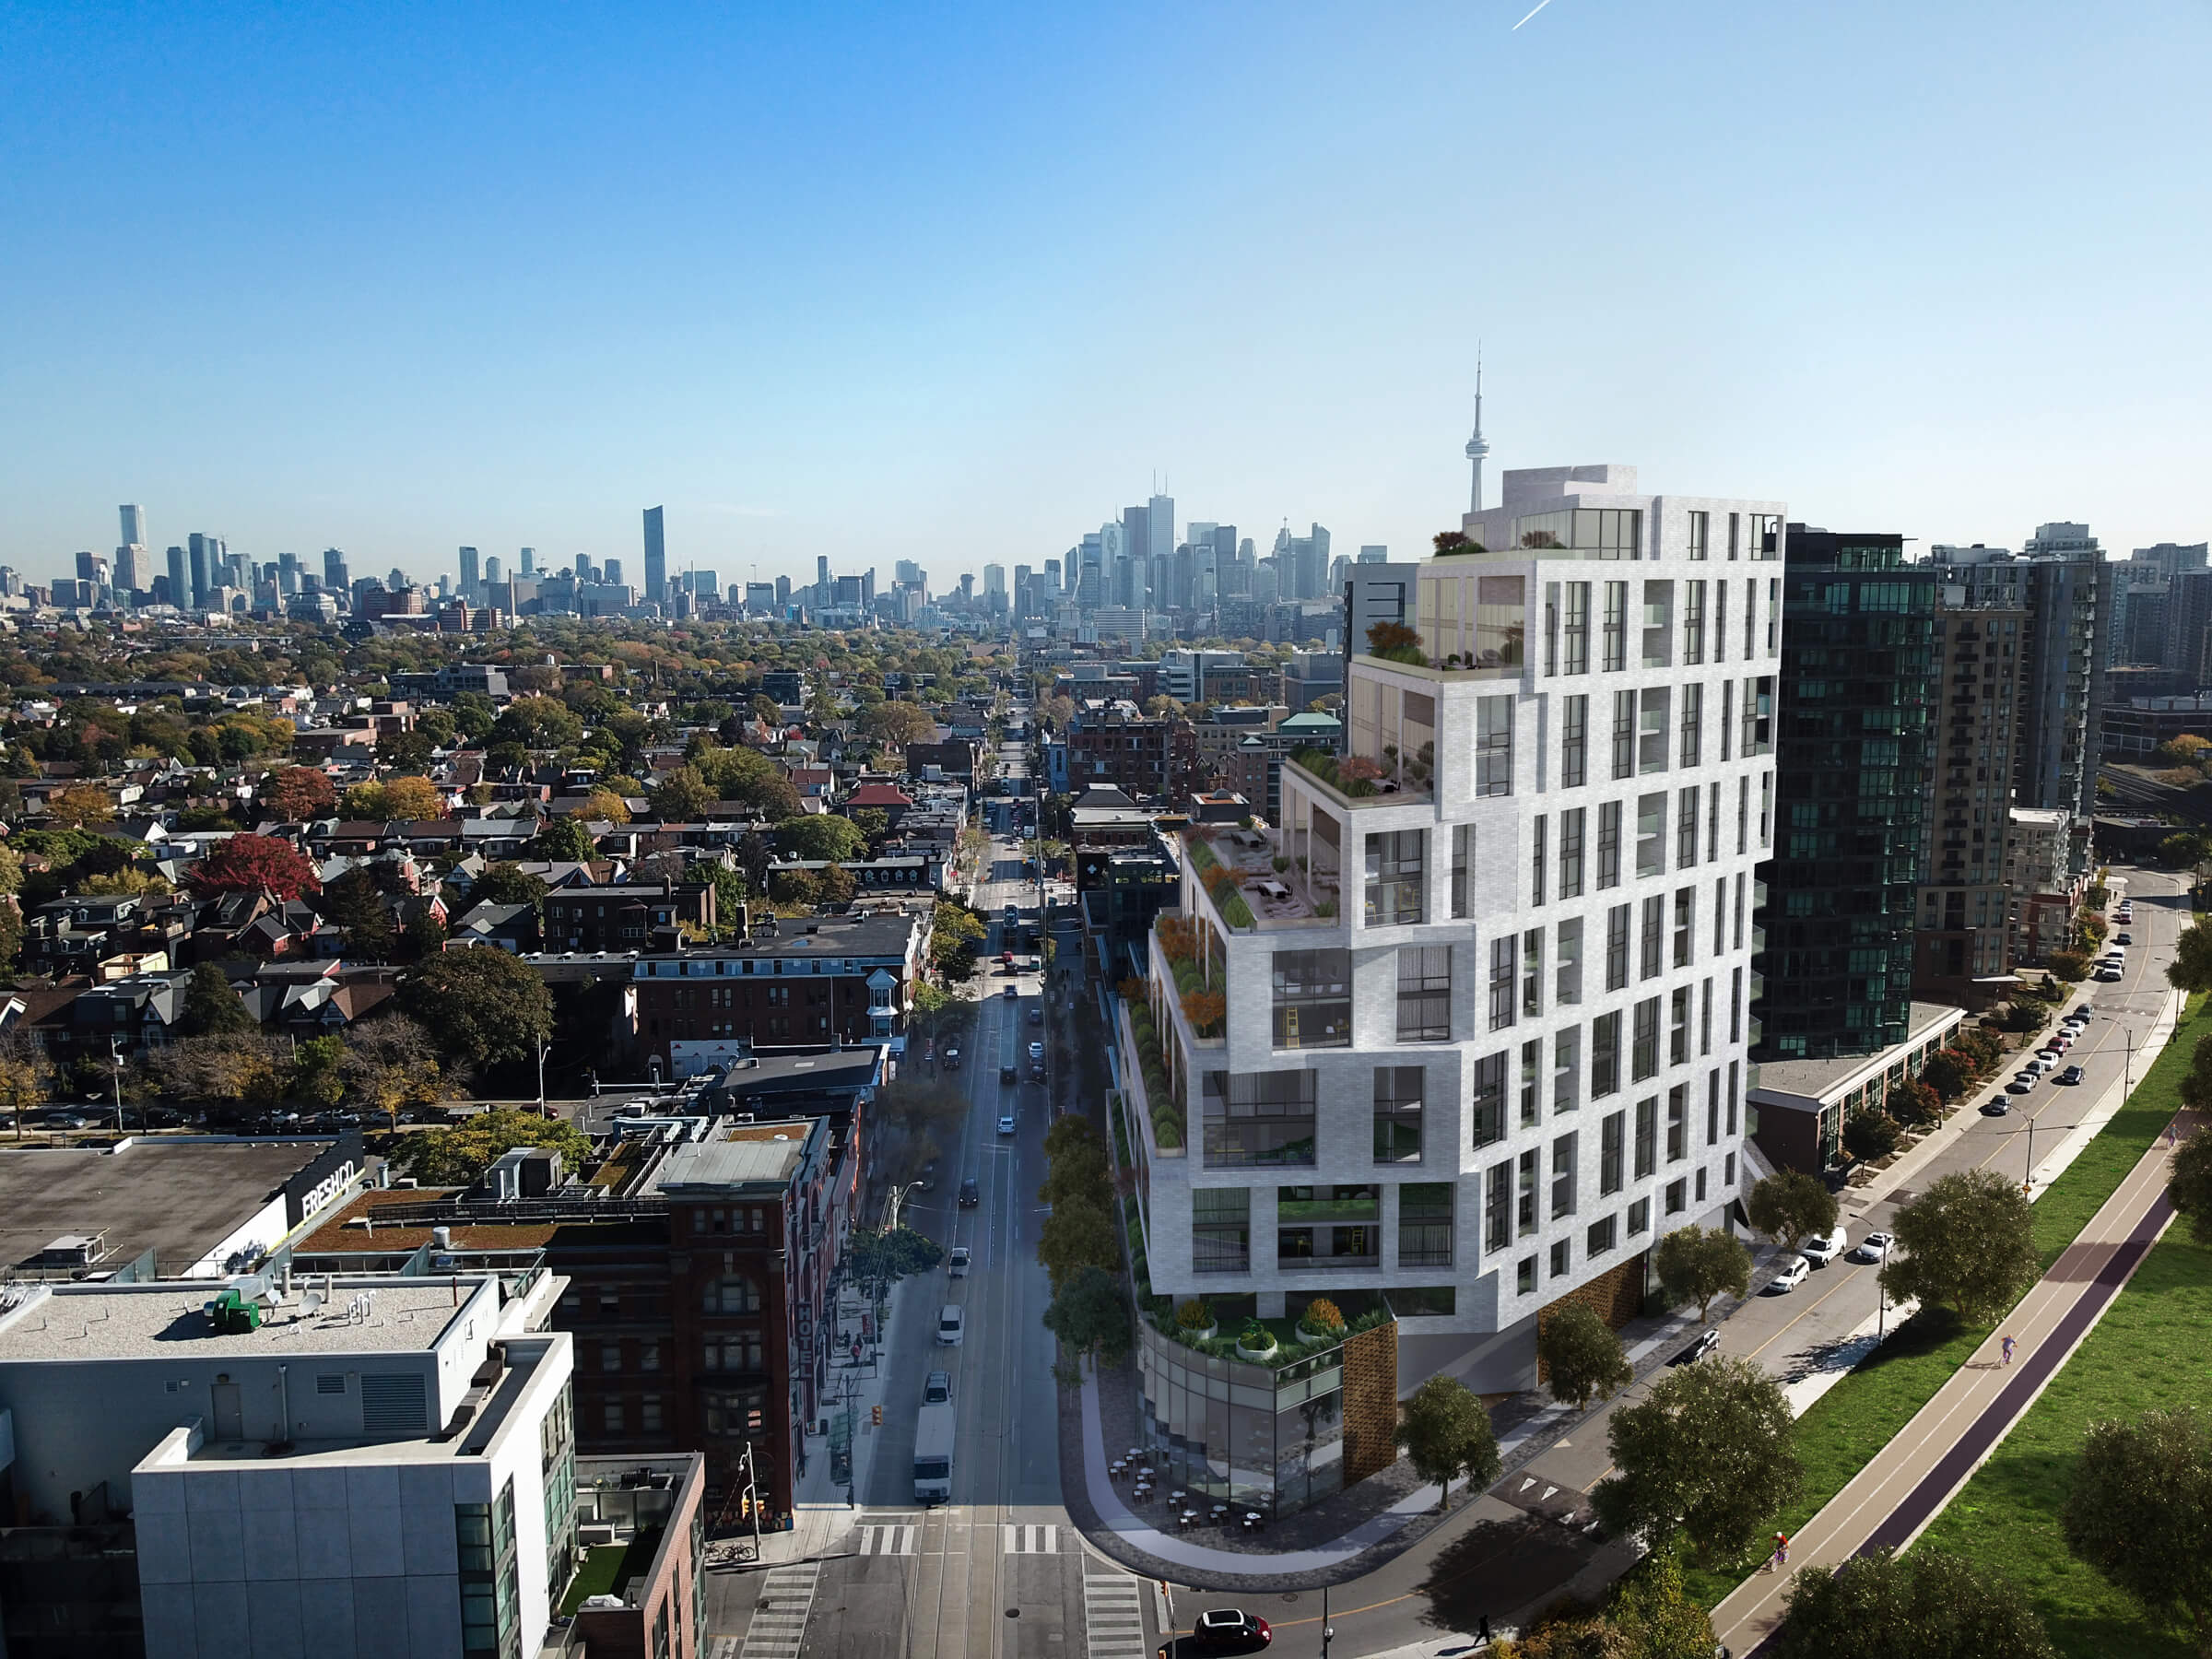 1181 Queen West - Gladstone & Queen • Skale DevelopmentsWith 112 suites, there will be 10 one-bedroom suites, 10 one-bed + den suites, and 92 two-bedroom and two-bedroom + den suites. 1181 Queen Street West will retain it's retail space with over 7,500 sq. ft. of newly built retail space on the ground floor.